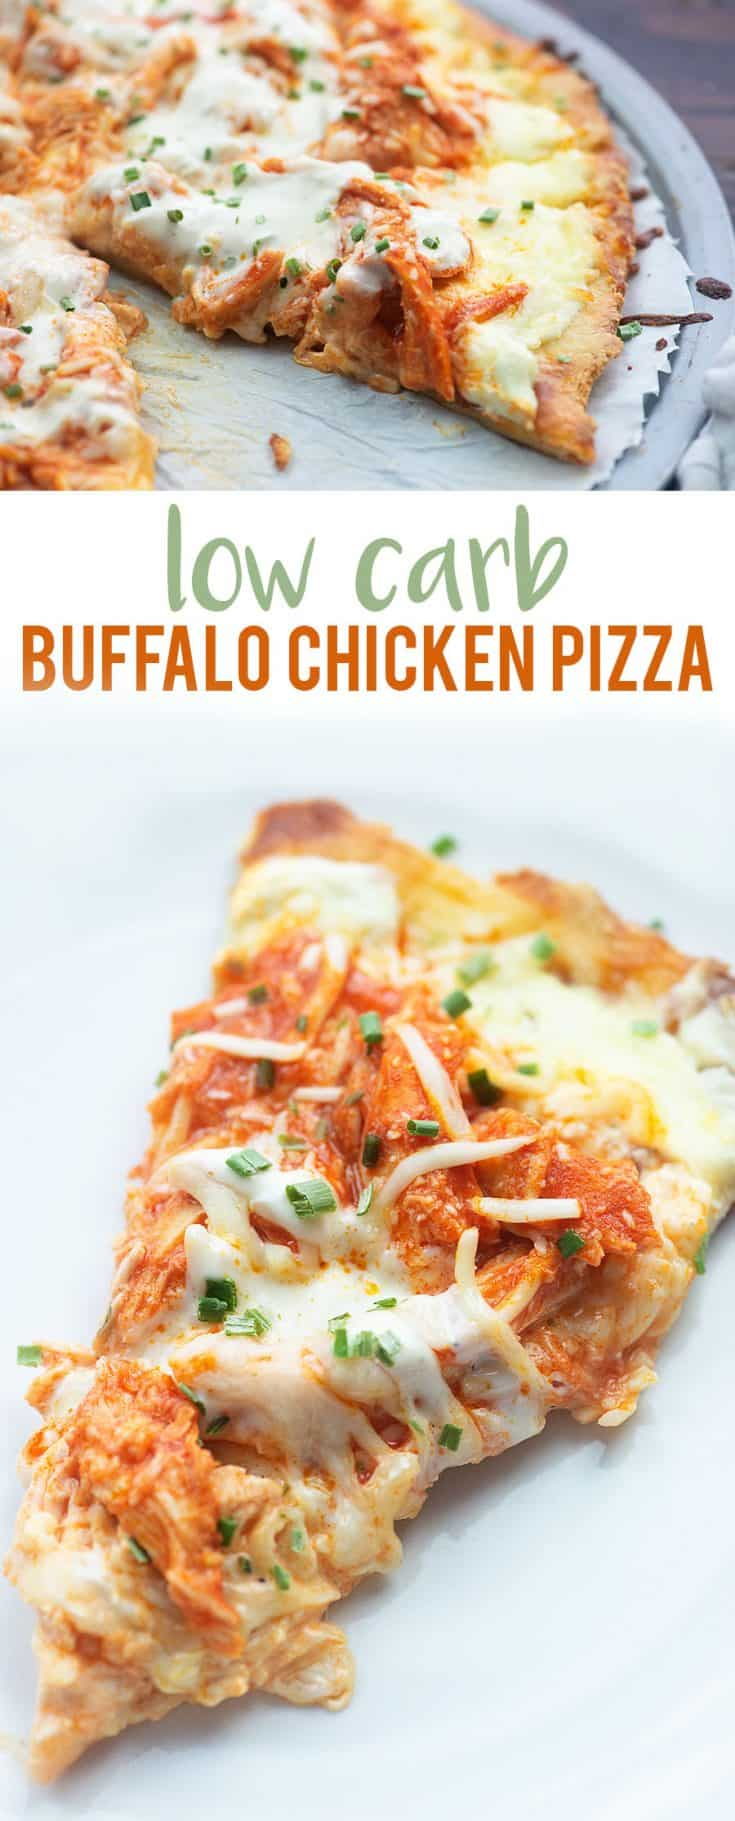 Low Carb Buffalo Chicken Pizza!! #keto #lowcarb #pizza